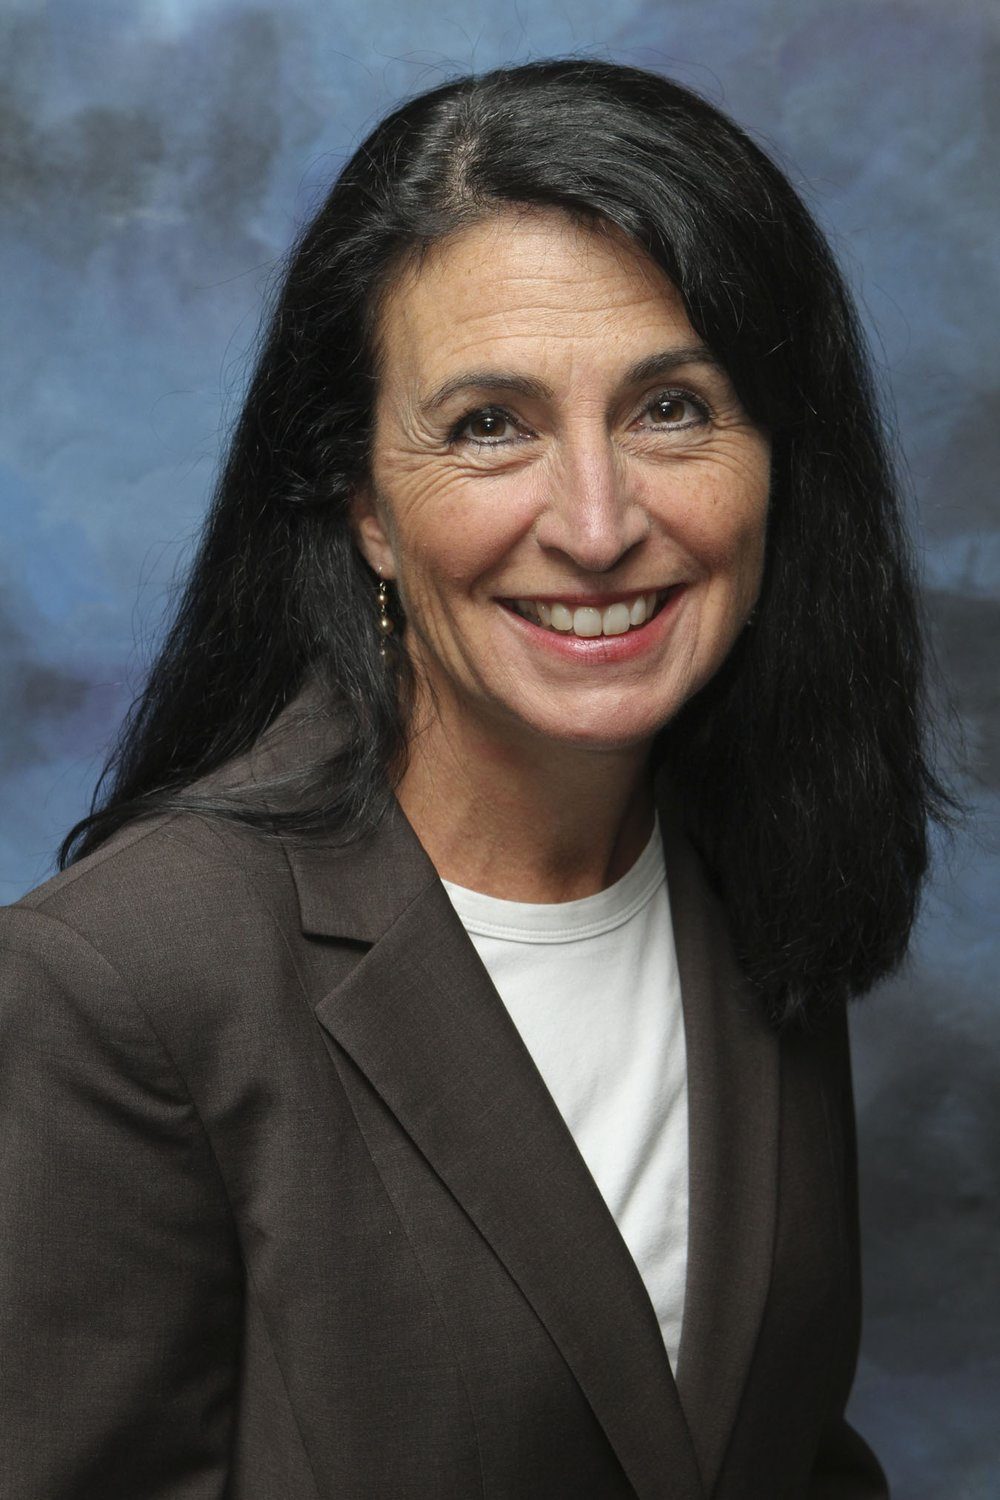 janet brewer photo.jpg